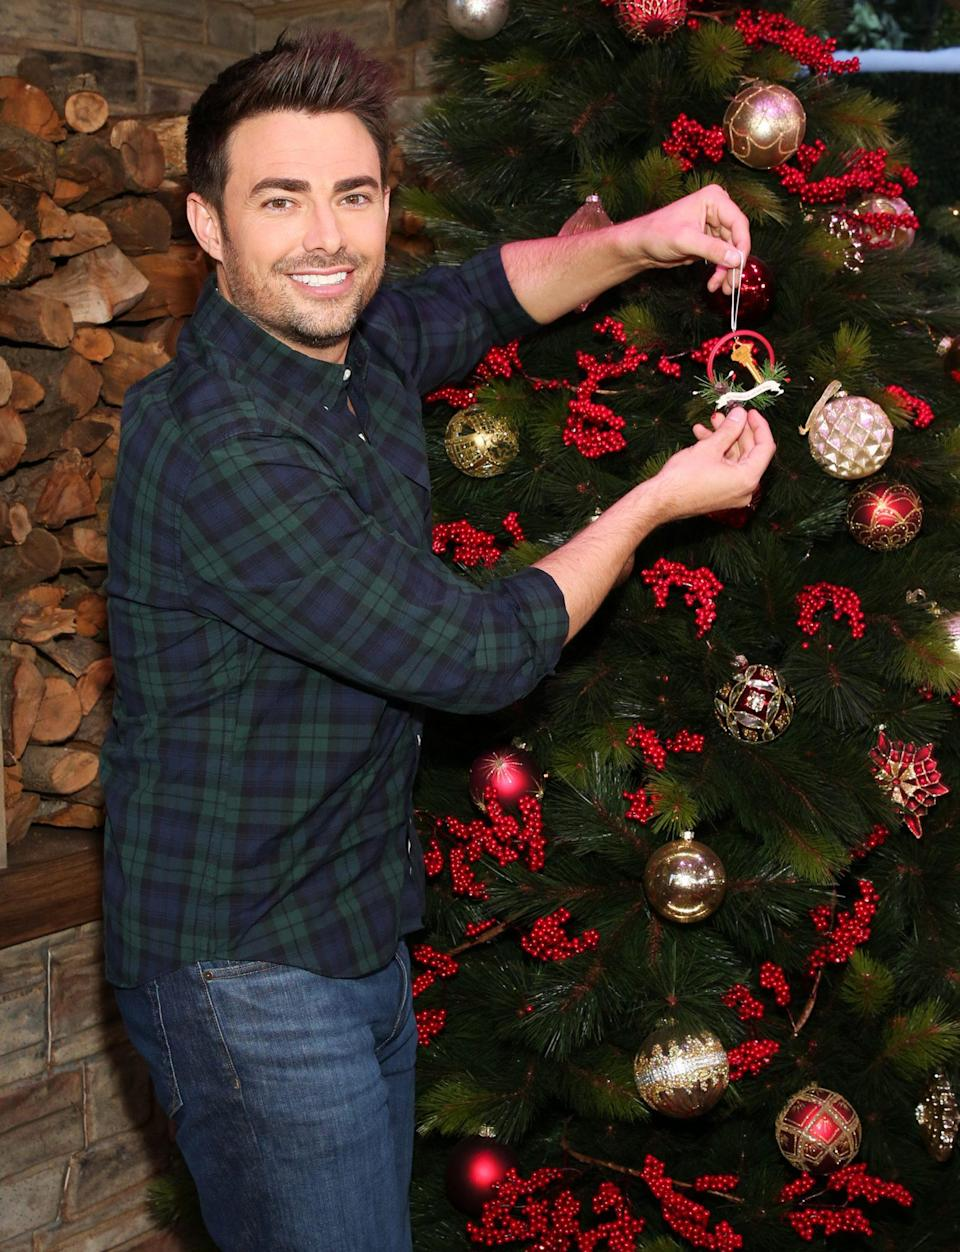 <p>Jonathan Bennett hangs an ornament on the Christmas tree during a visit to Hallmark Channel's <i>Home & Family </i>on Tuesday in Universal City, California. </p>